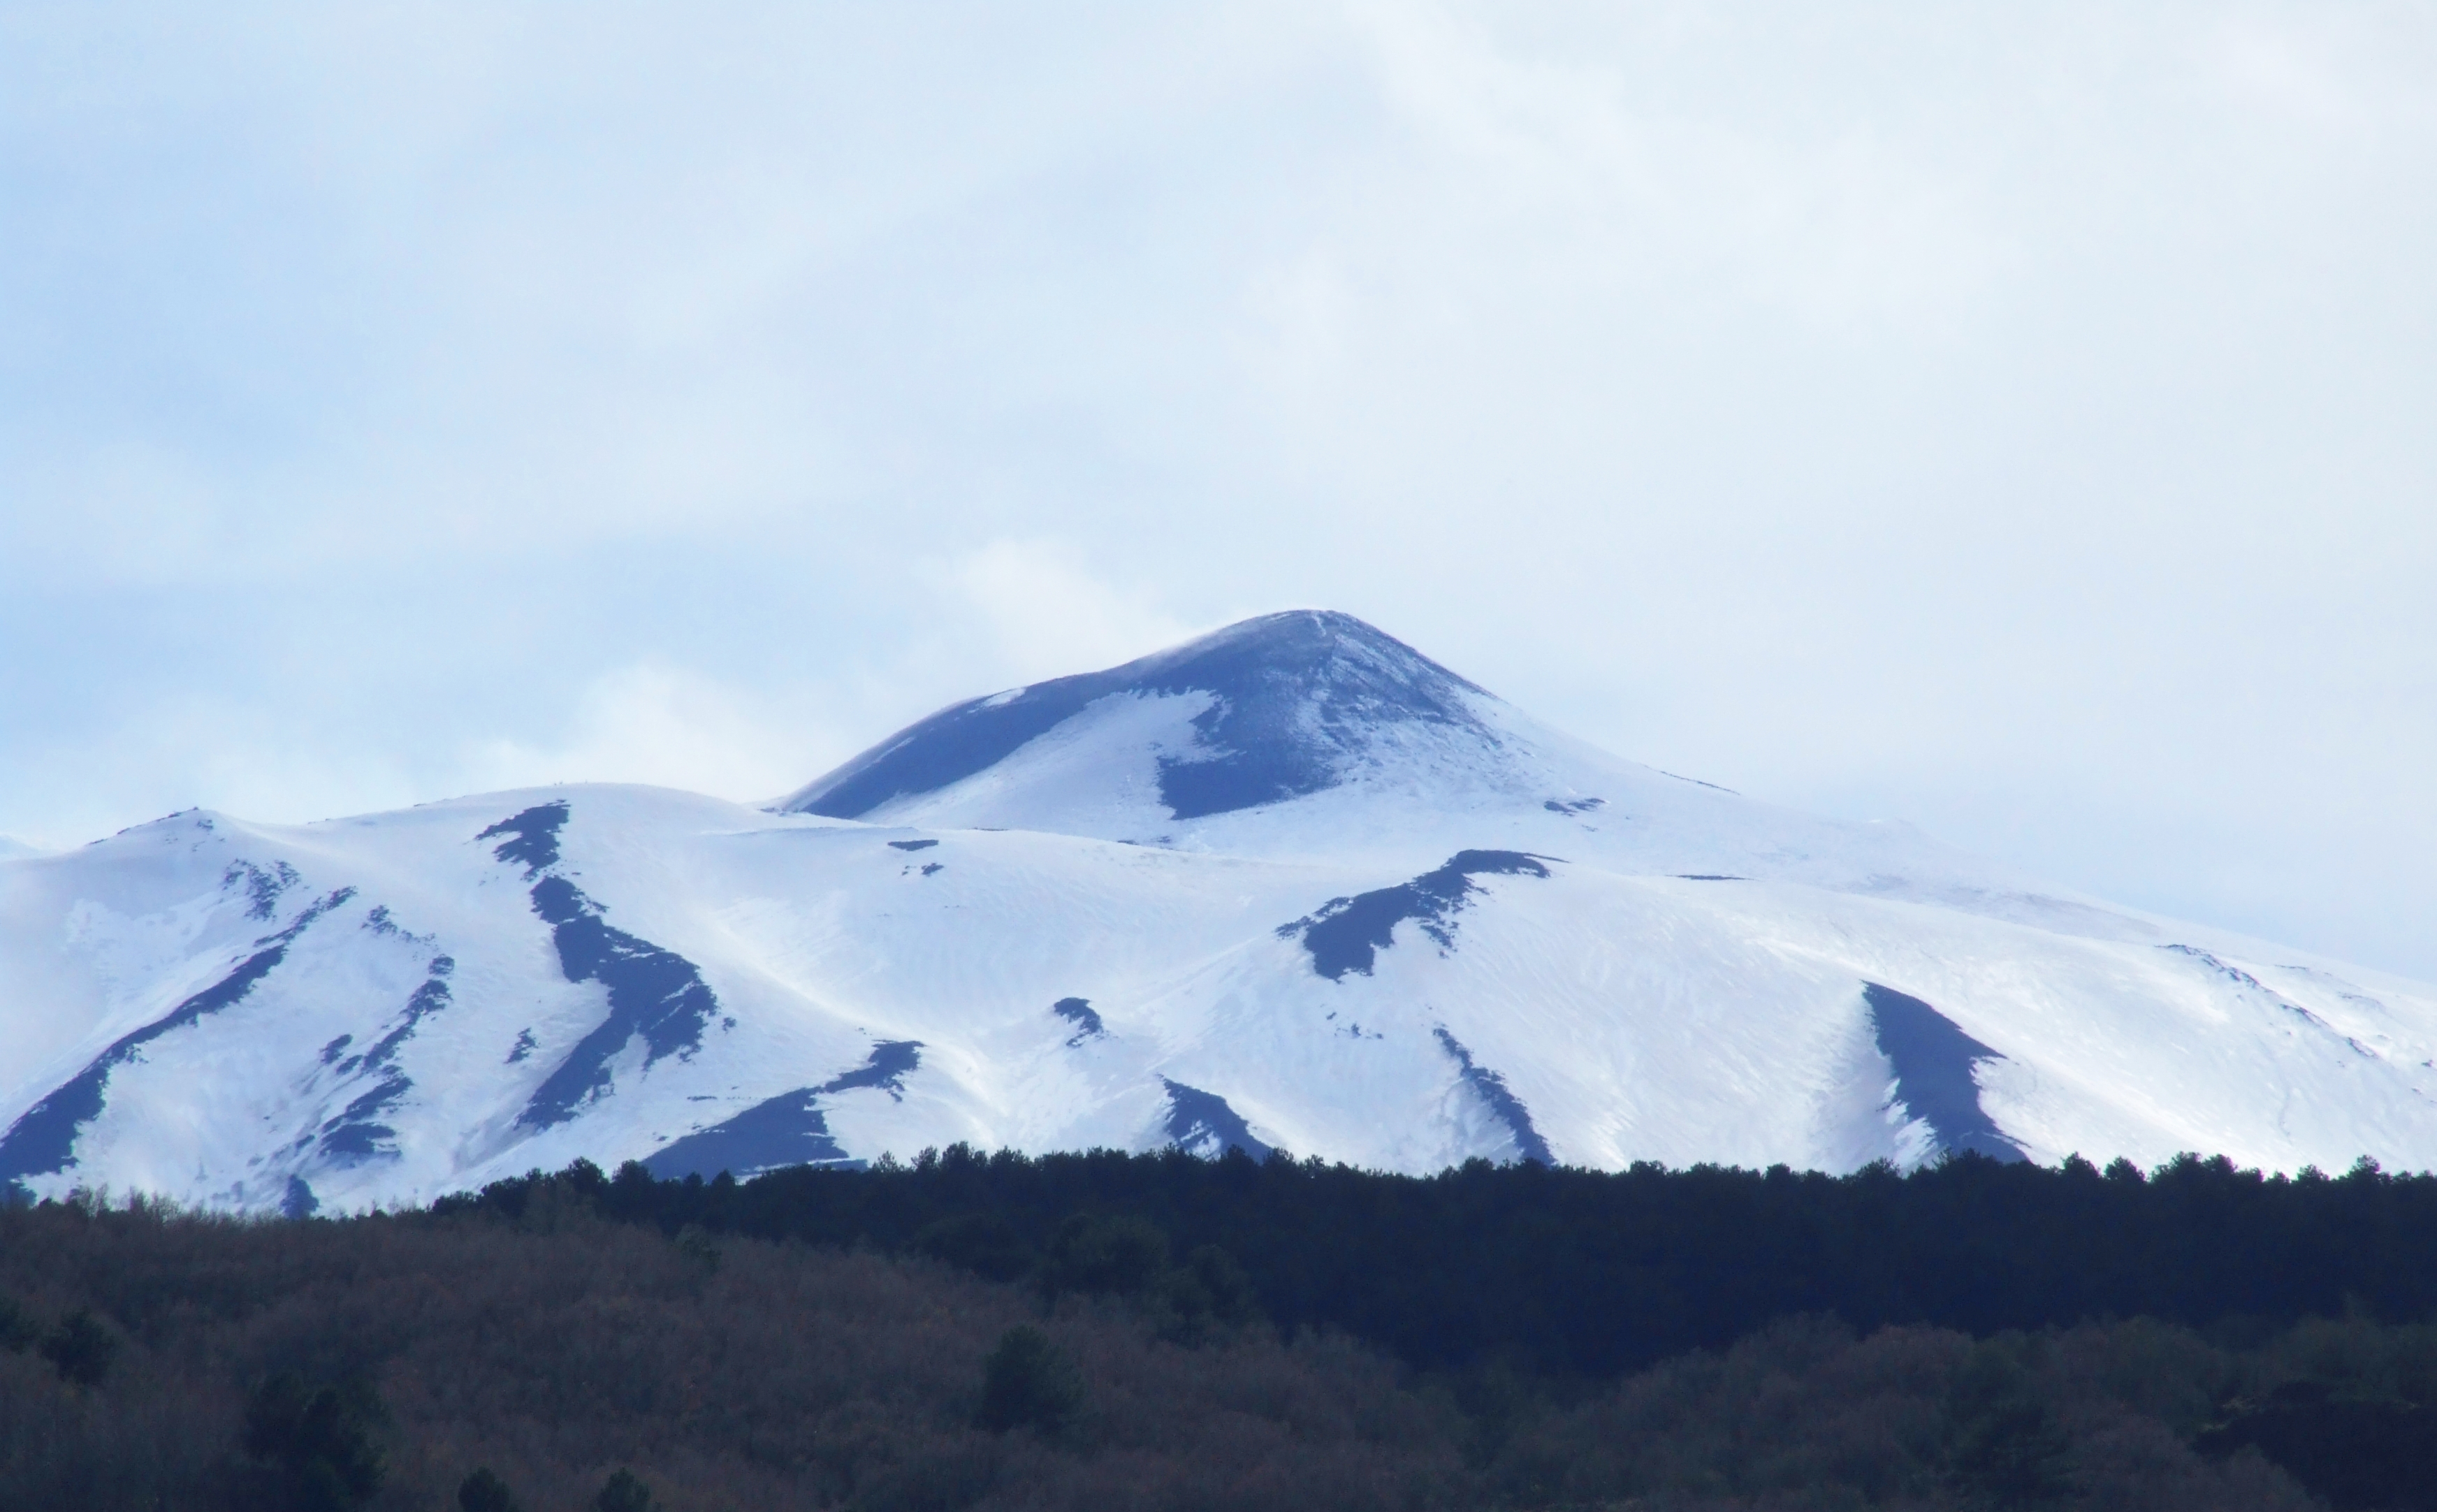 Etna volcano sicily italy - creative commons by gnuckx photo